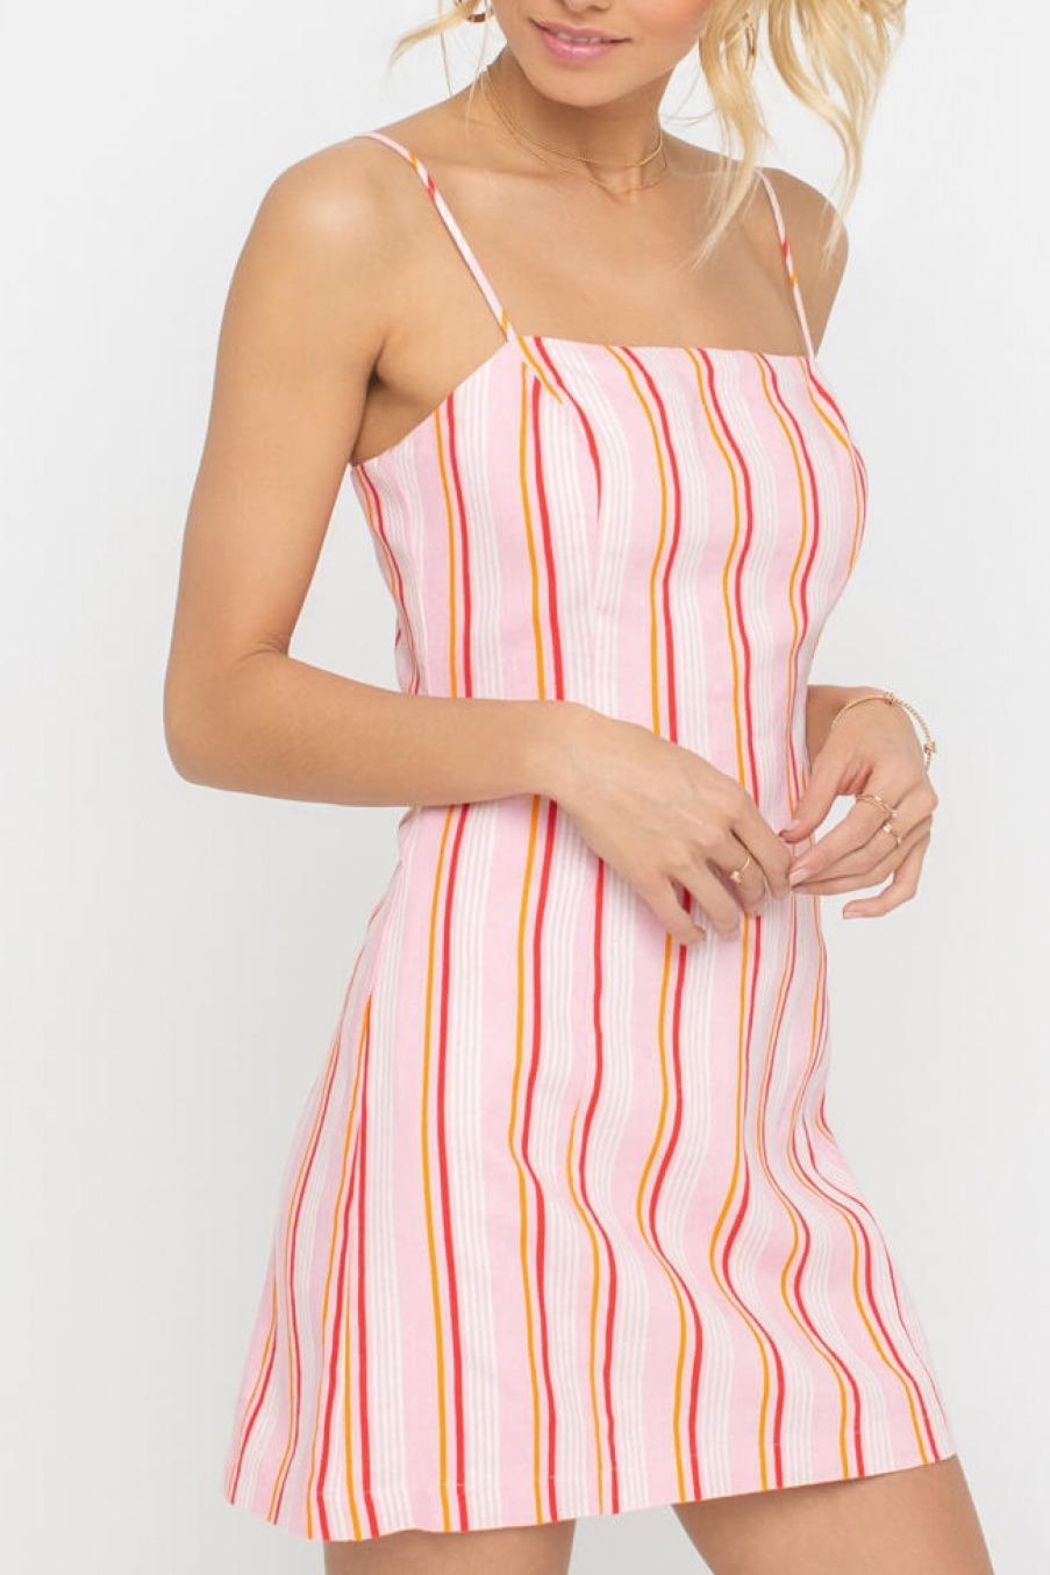 Lush Clothing Striped Square Neckline Dress From Virginia By Mod Soul Shoptiques